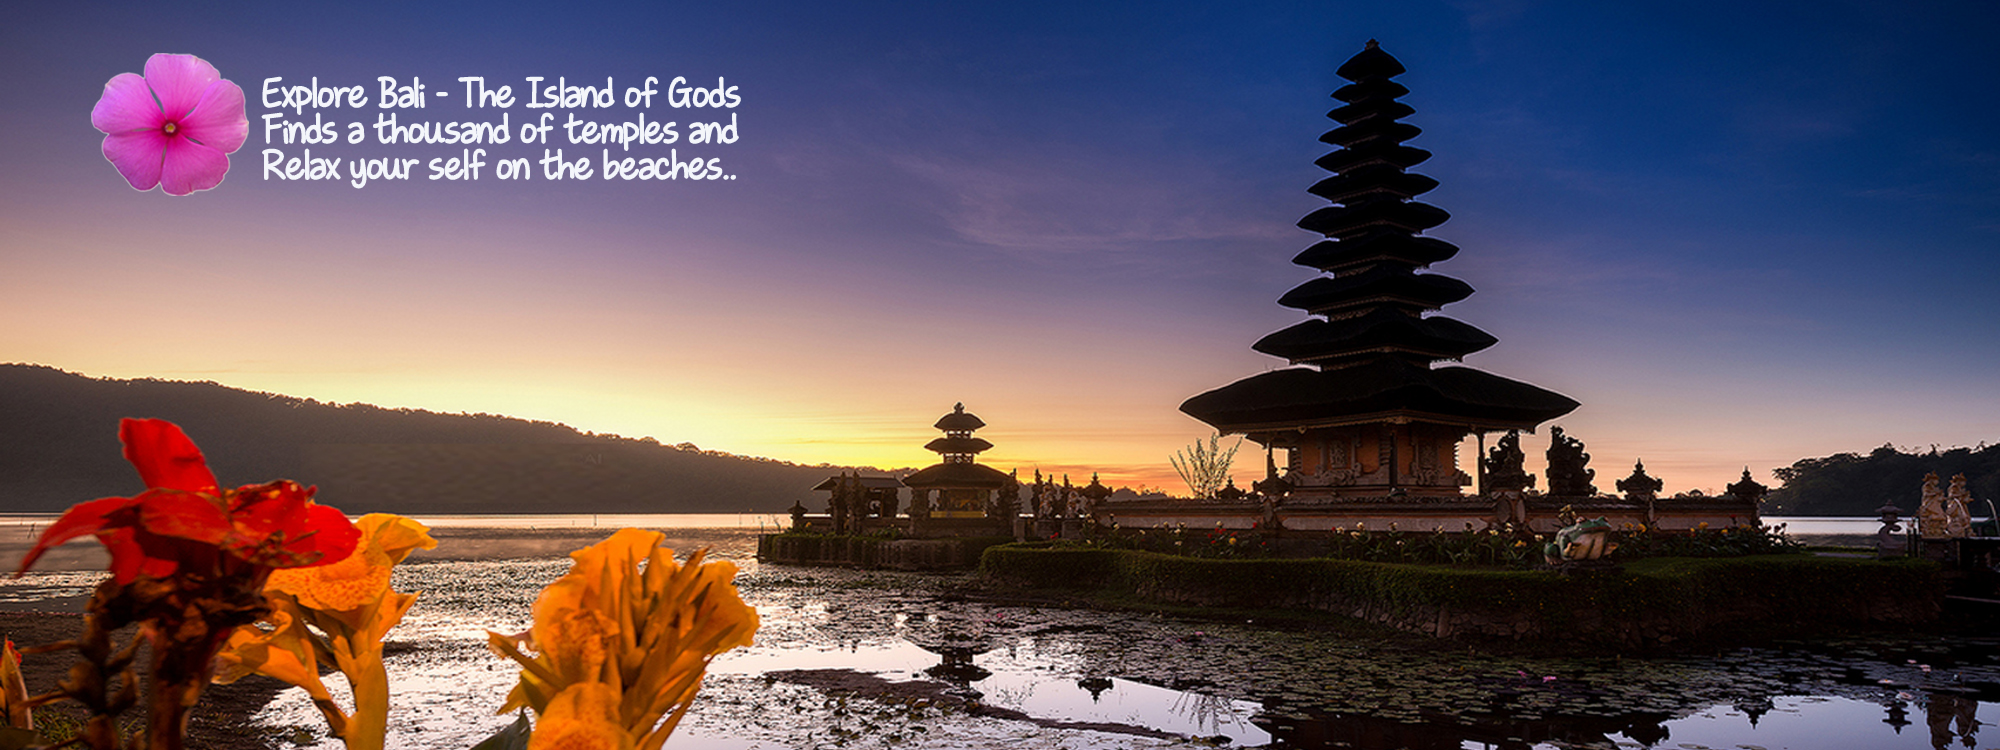 10992500224 757c8bf8c0 o Bali   The Island of Gods